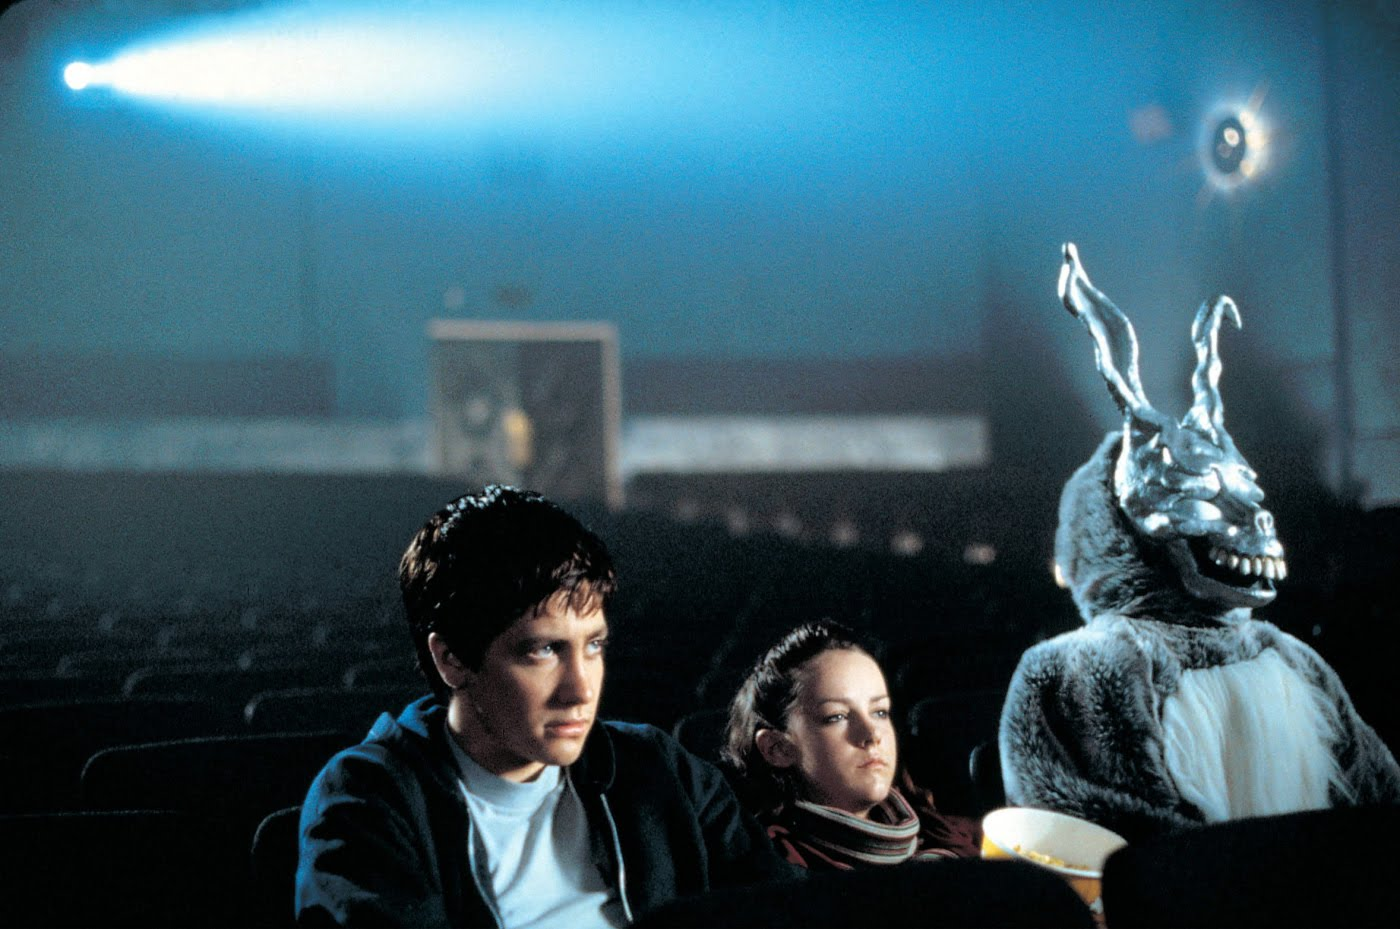 Donnie-Darko1HERO MAGAZINE WEEKEND COMBO HALLOWEEN EXCORSIST MUSIC EAT LONDON DEATH JAKE GYLENHALL DONNIE DARKO ART HOGARTH